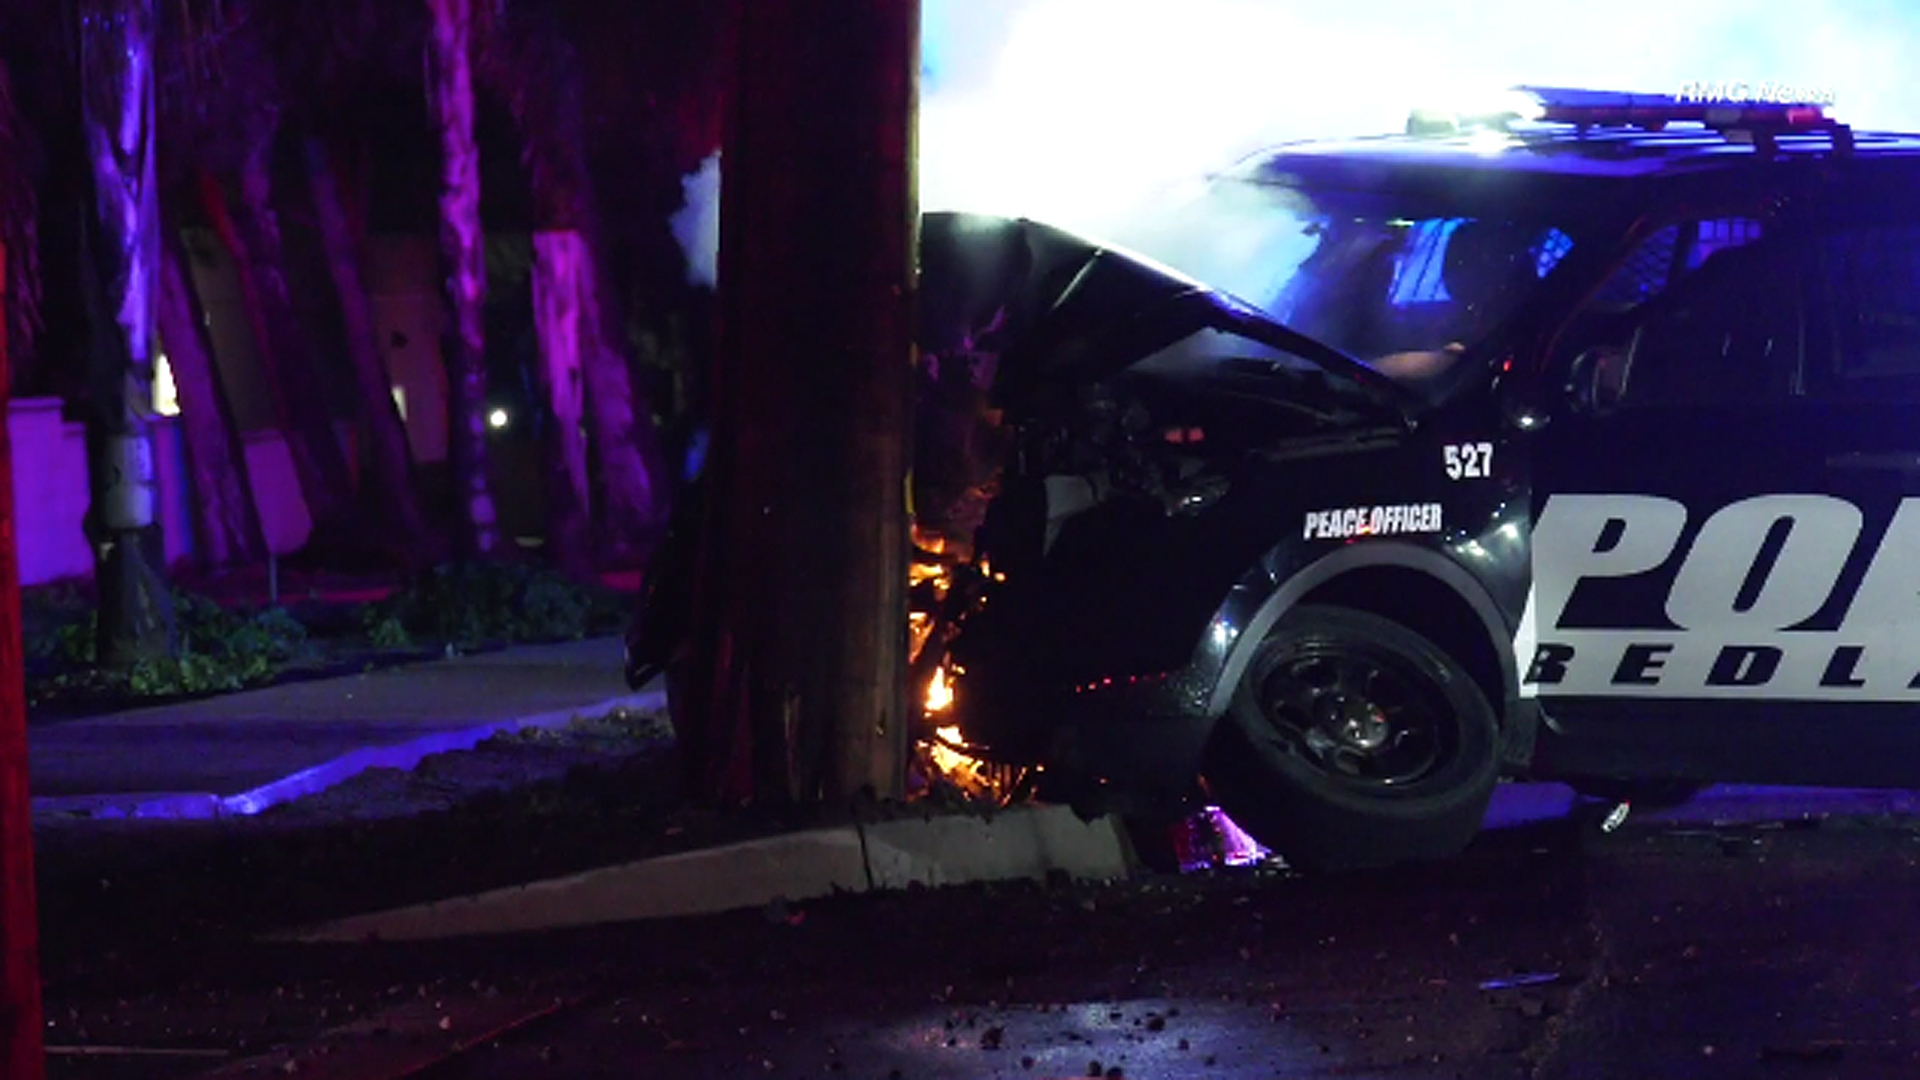 A patrol vehicle crashed into a power pole in Redlands on Feb. 15, 2019. (Credit: RMGNews)